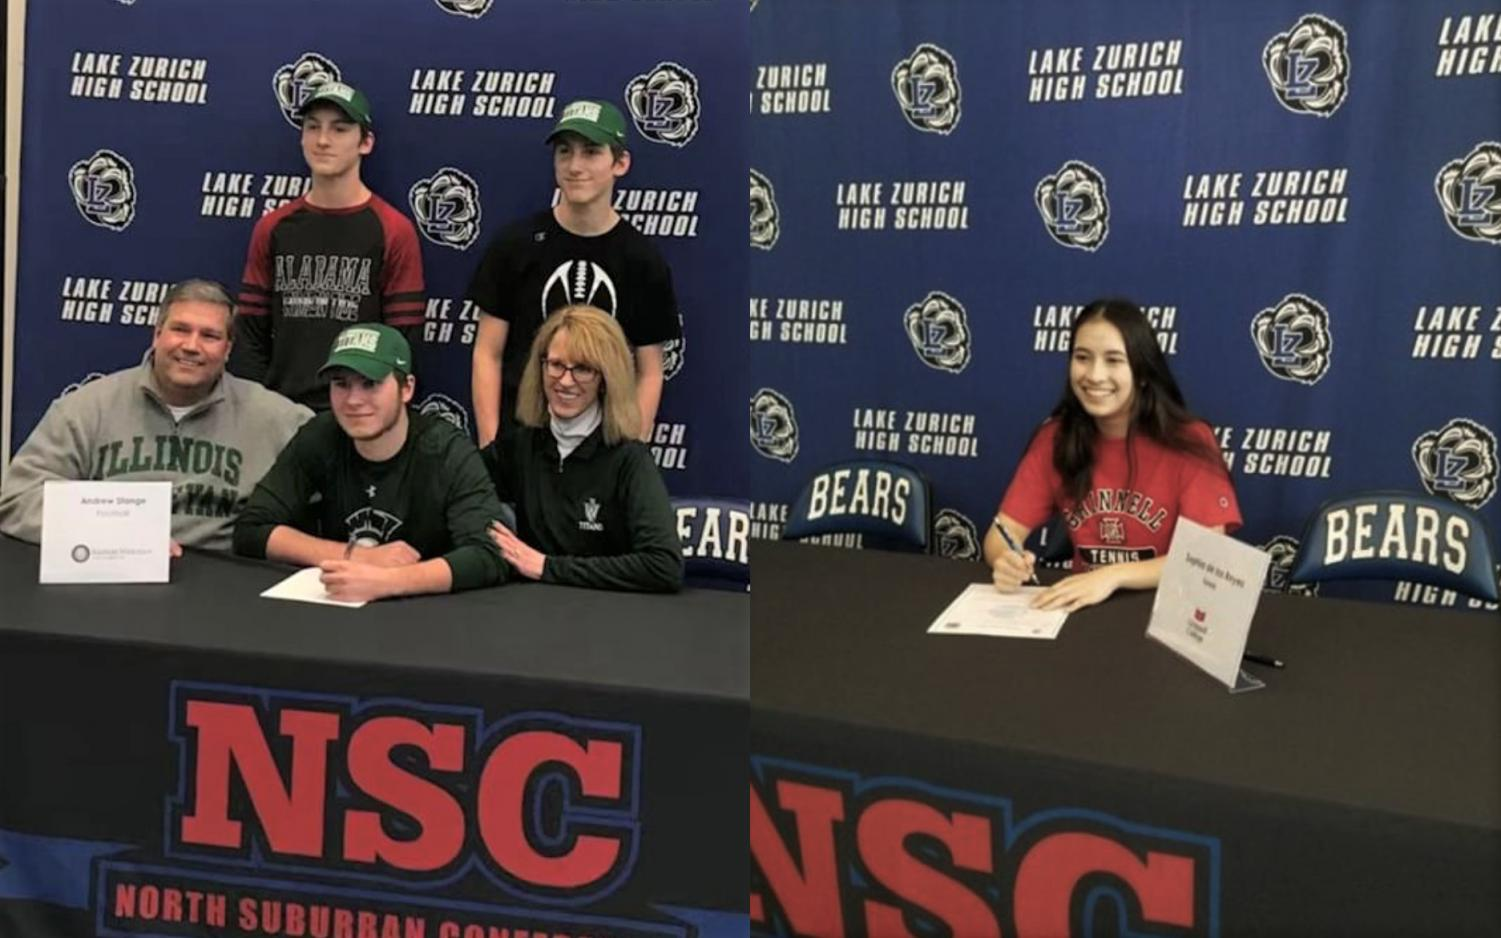 Andrew Stange, senior, and Sophia de los Reyes, senior, sign their paperwork on signing day for their college athletics. Stange will be playing football at Illinois Wesleyan University, and de los Reyes will be playing tennis at Grinnell College